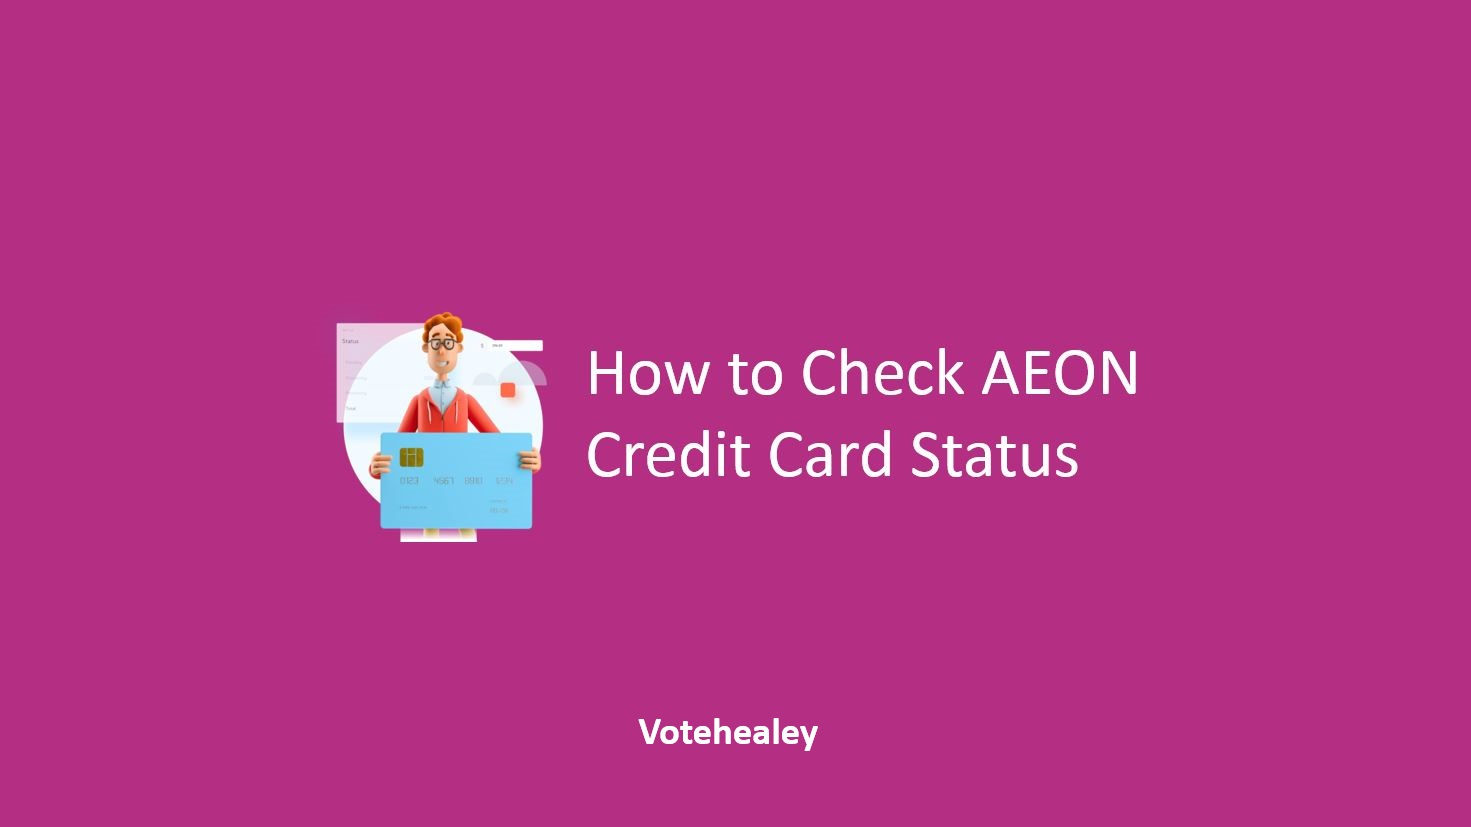 How to Check AEON Credit Card Status